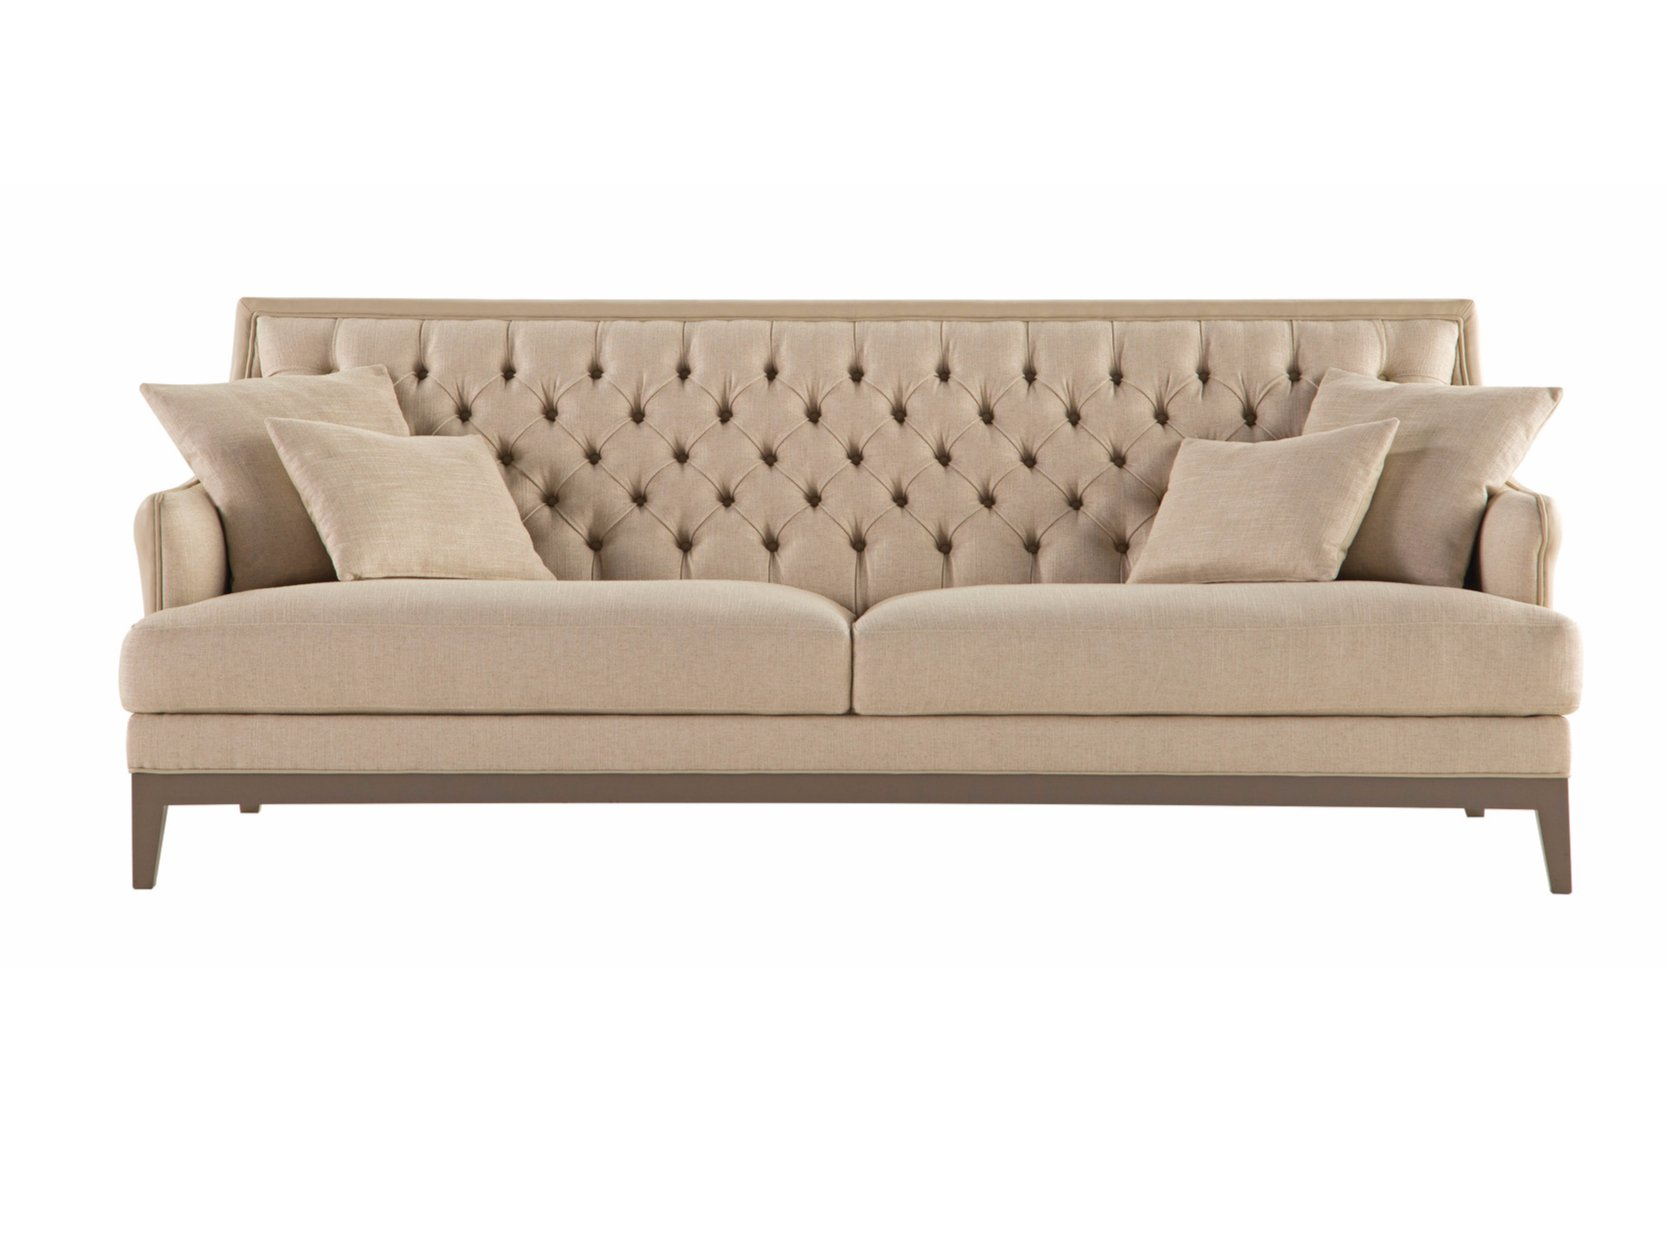 Epoq canap collection epoq by roche bobois design les - Canape cuir roche bobois ...